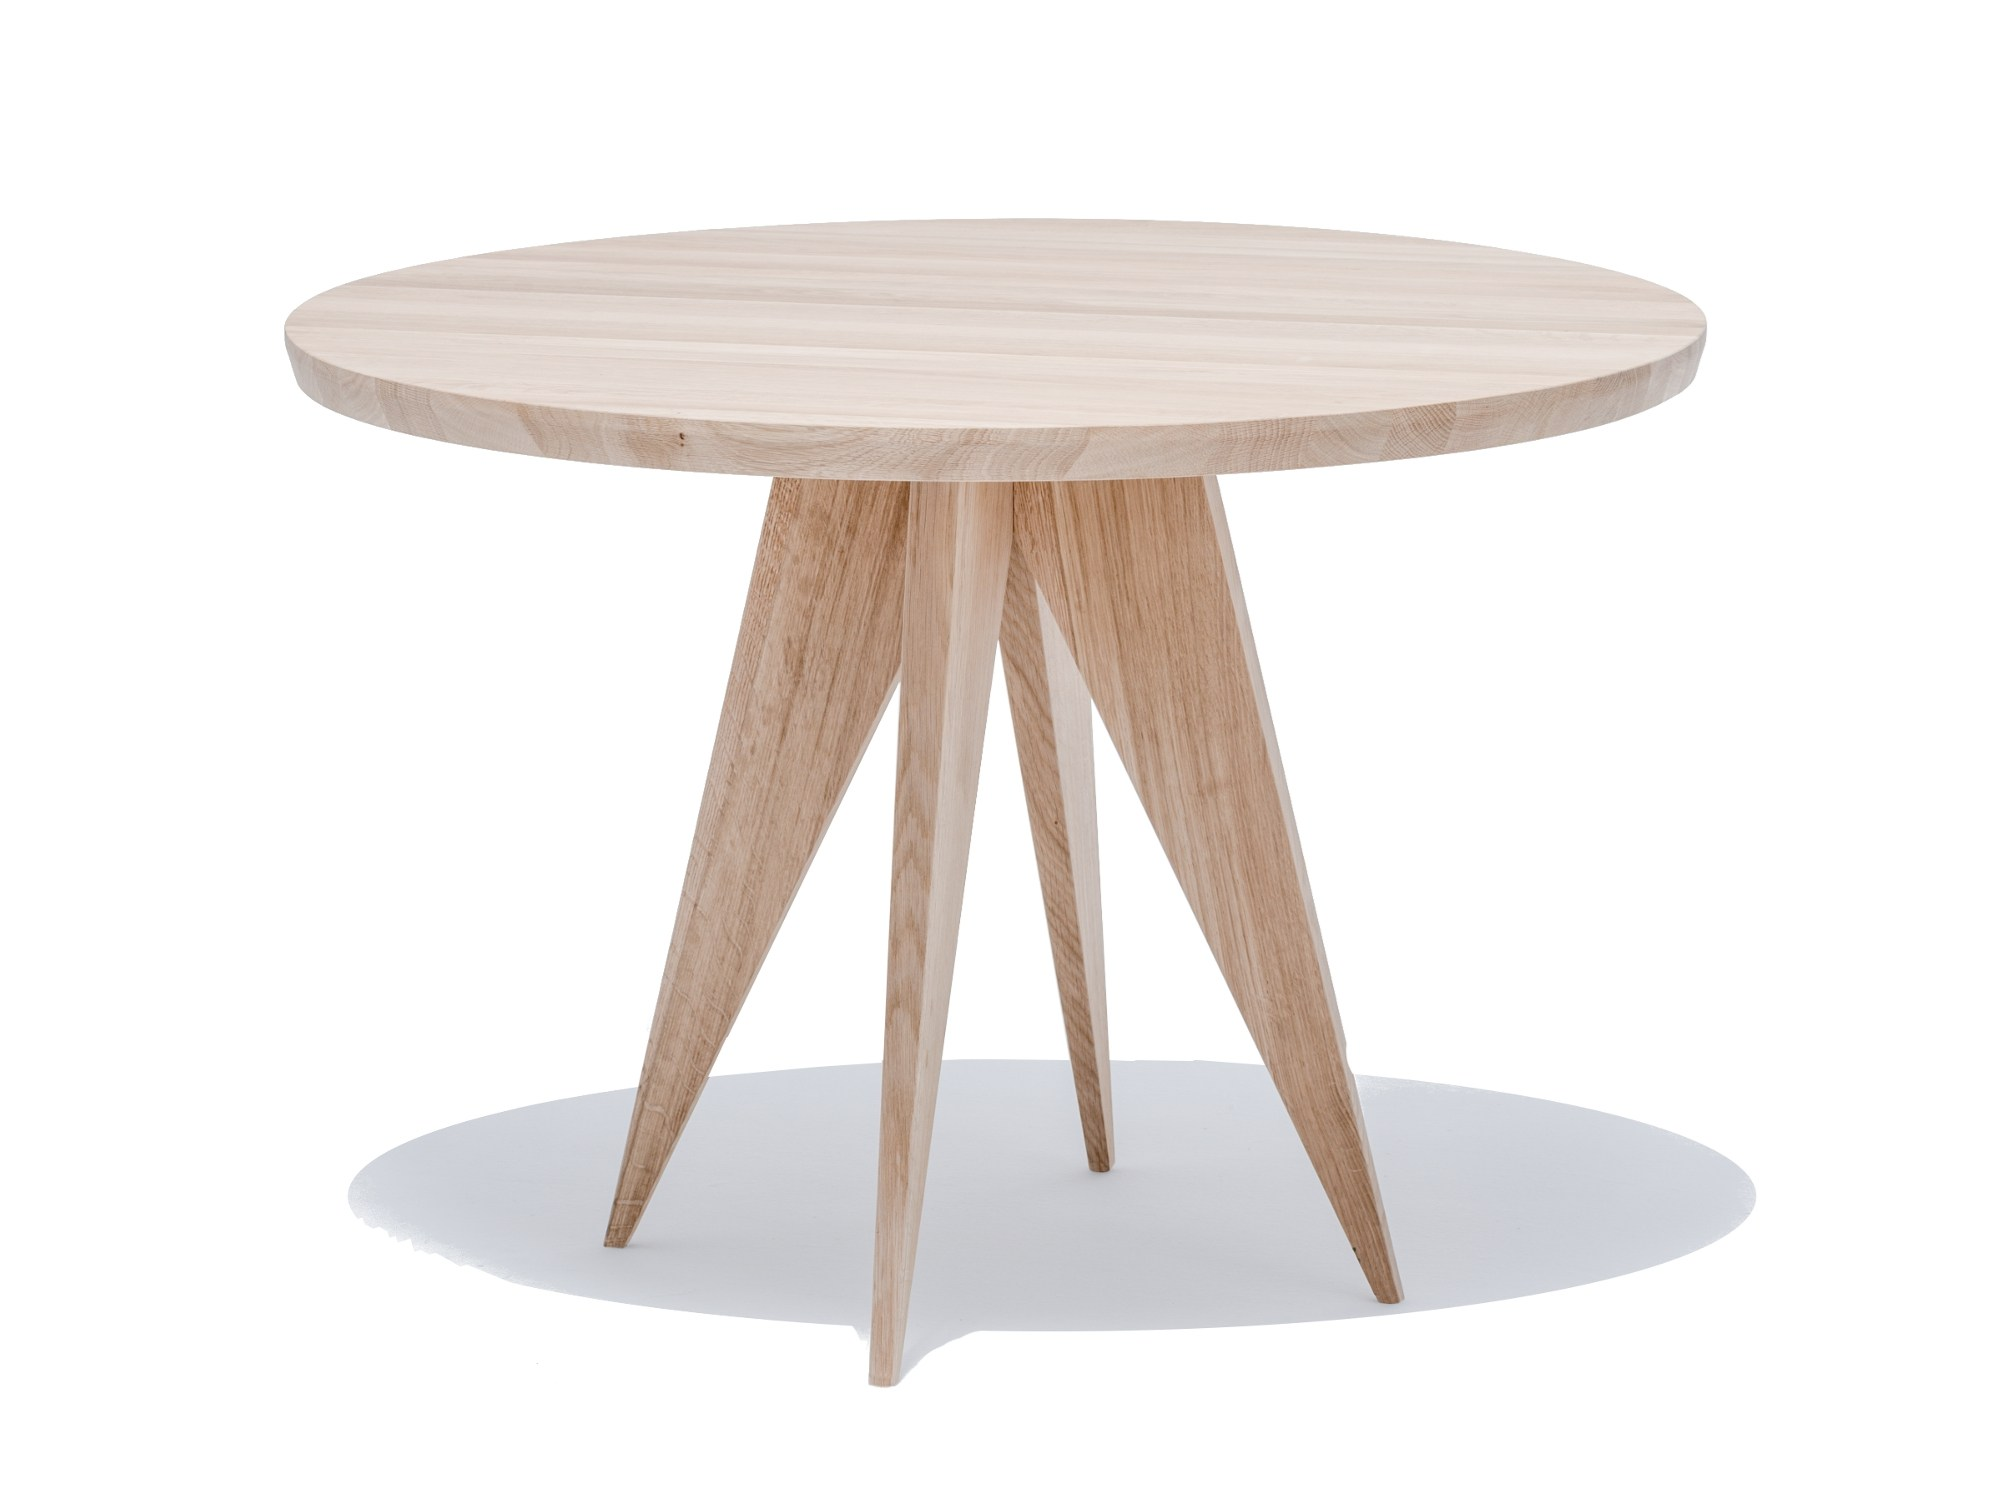 Round english oak dining table medusa by st furniture - Round oak dining tables ...